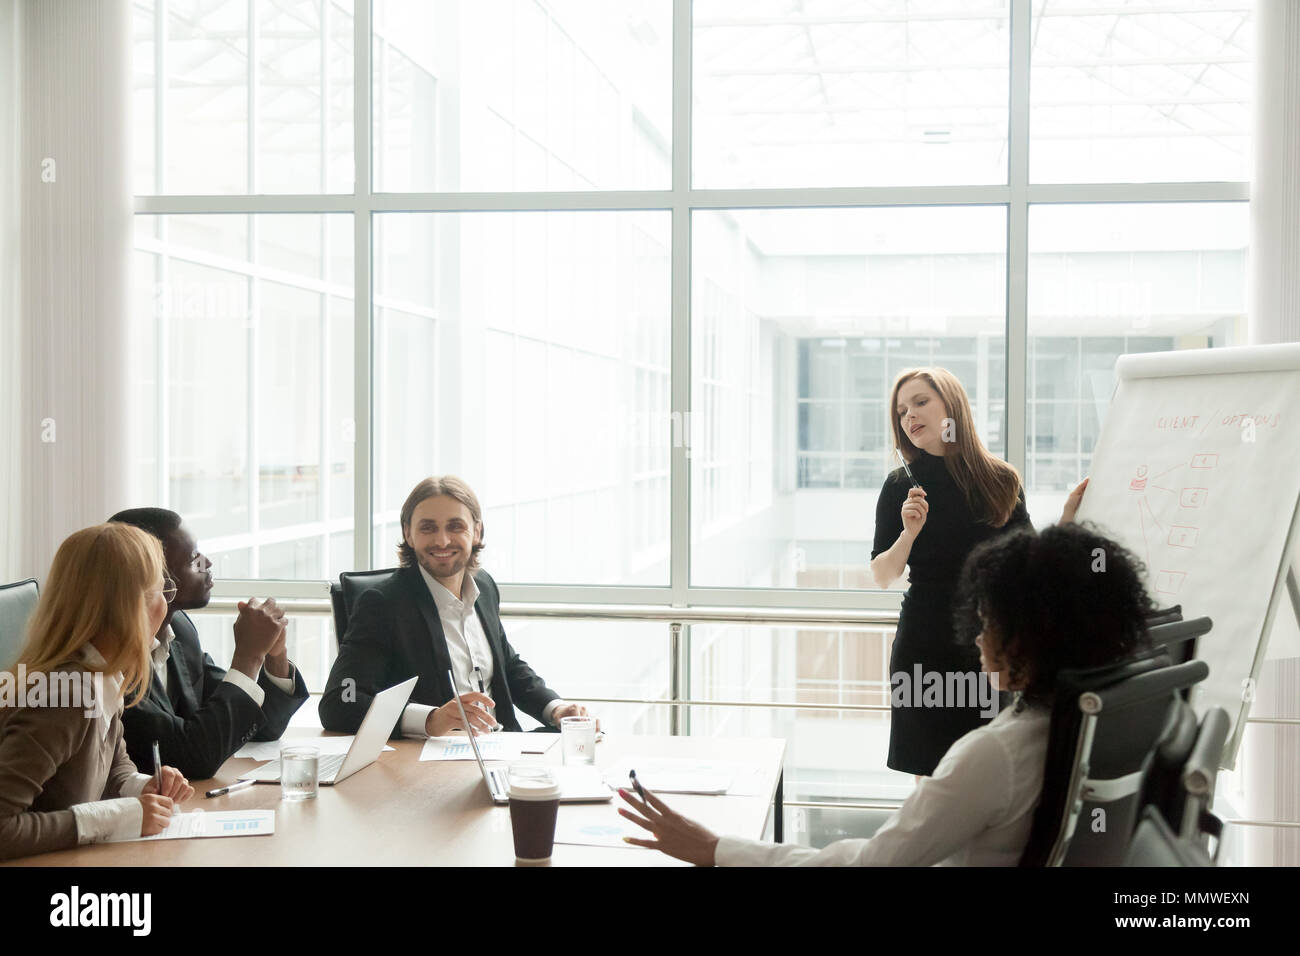 Businesswoman giving presentation for multiracial corporate team - Stock Image